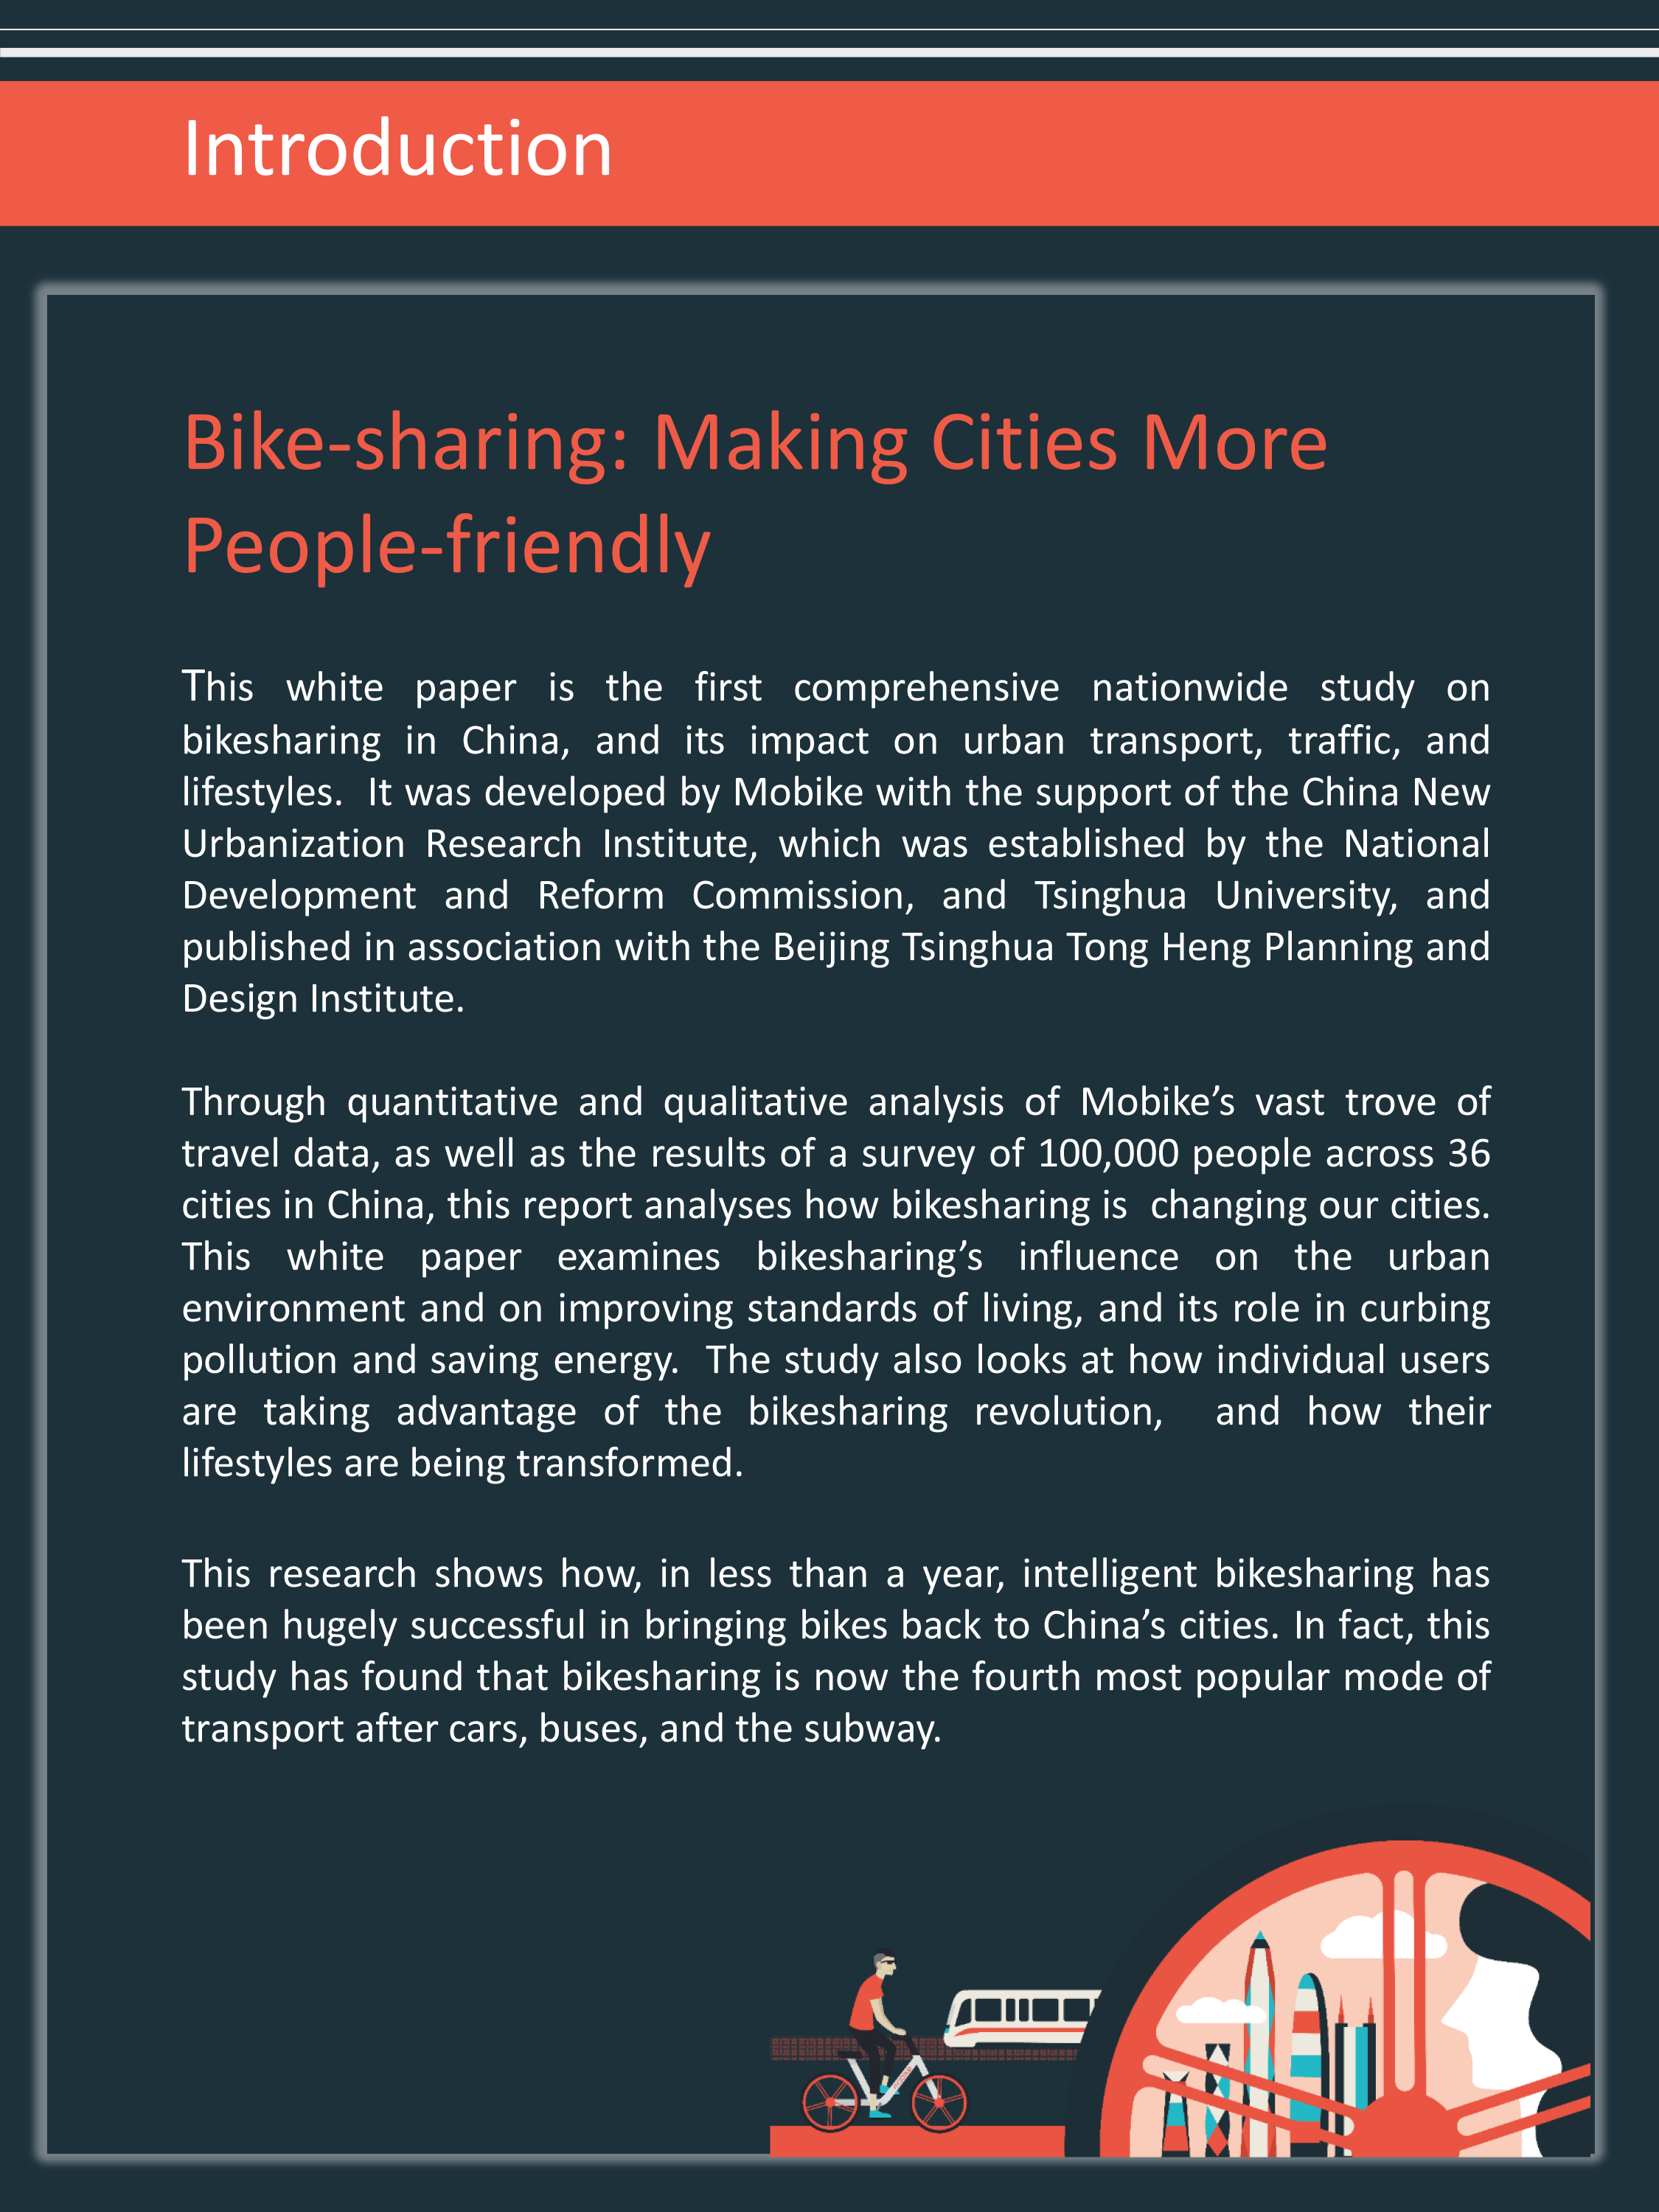 Bike-sharing: Making Cities More People-friendly